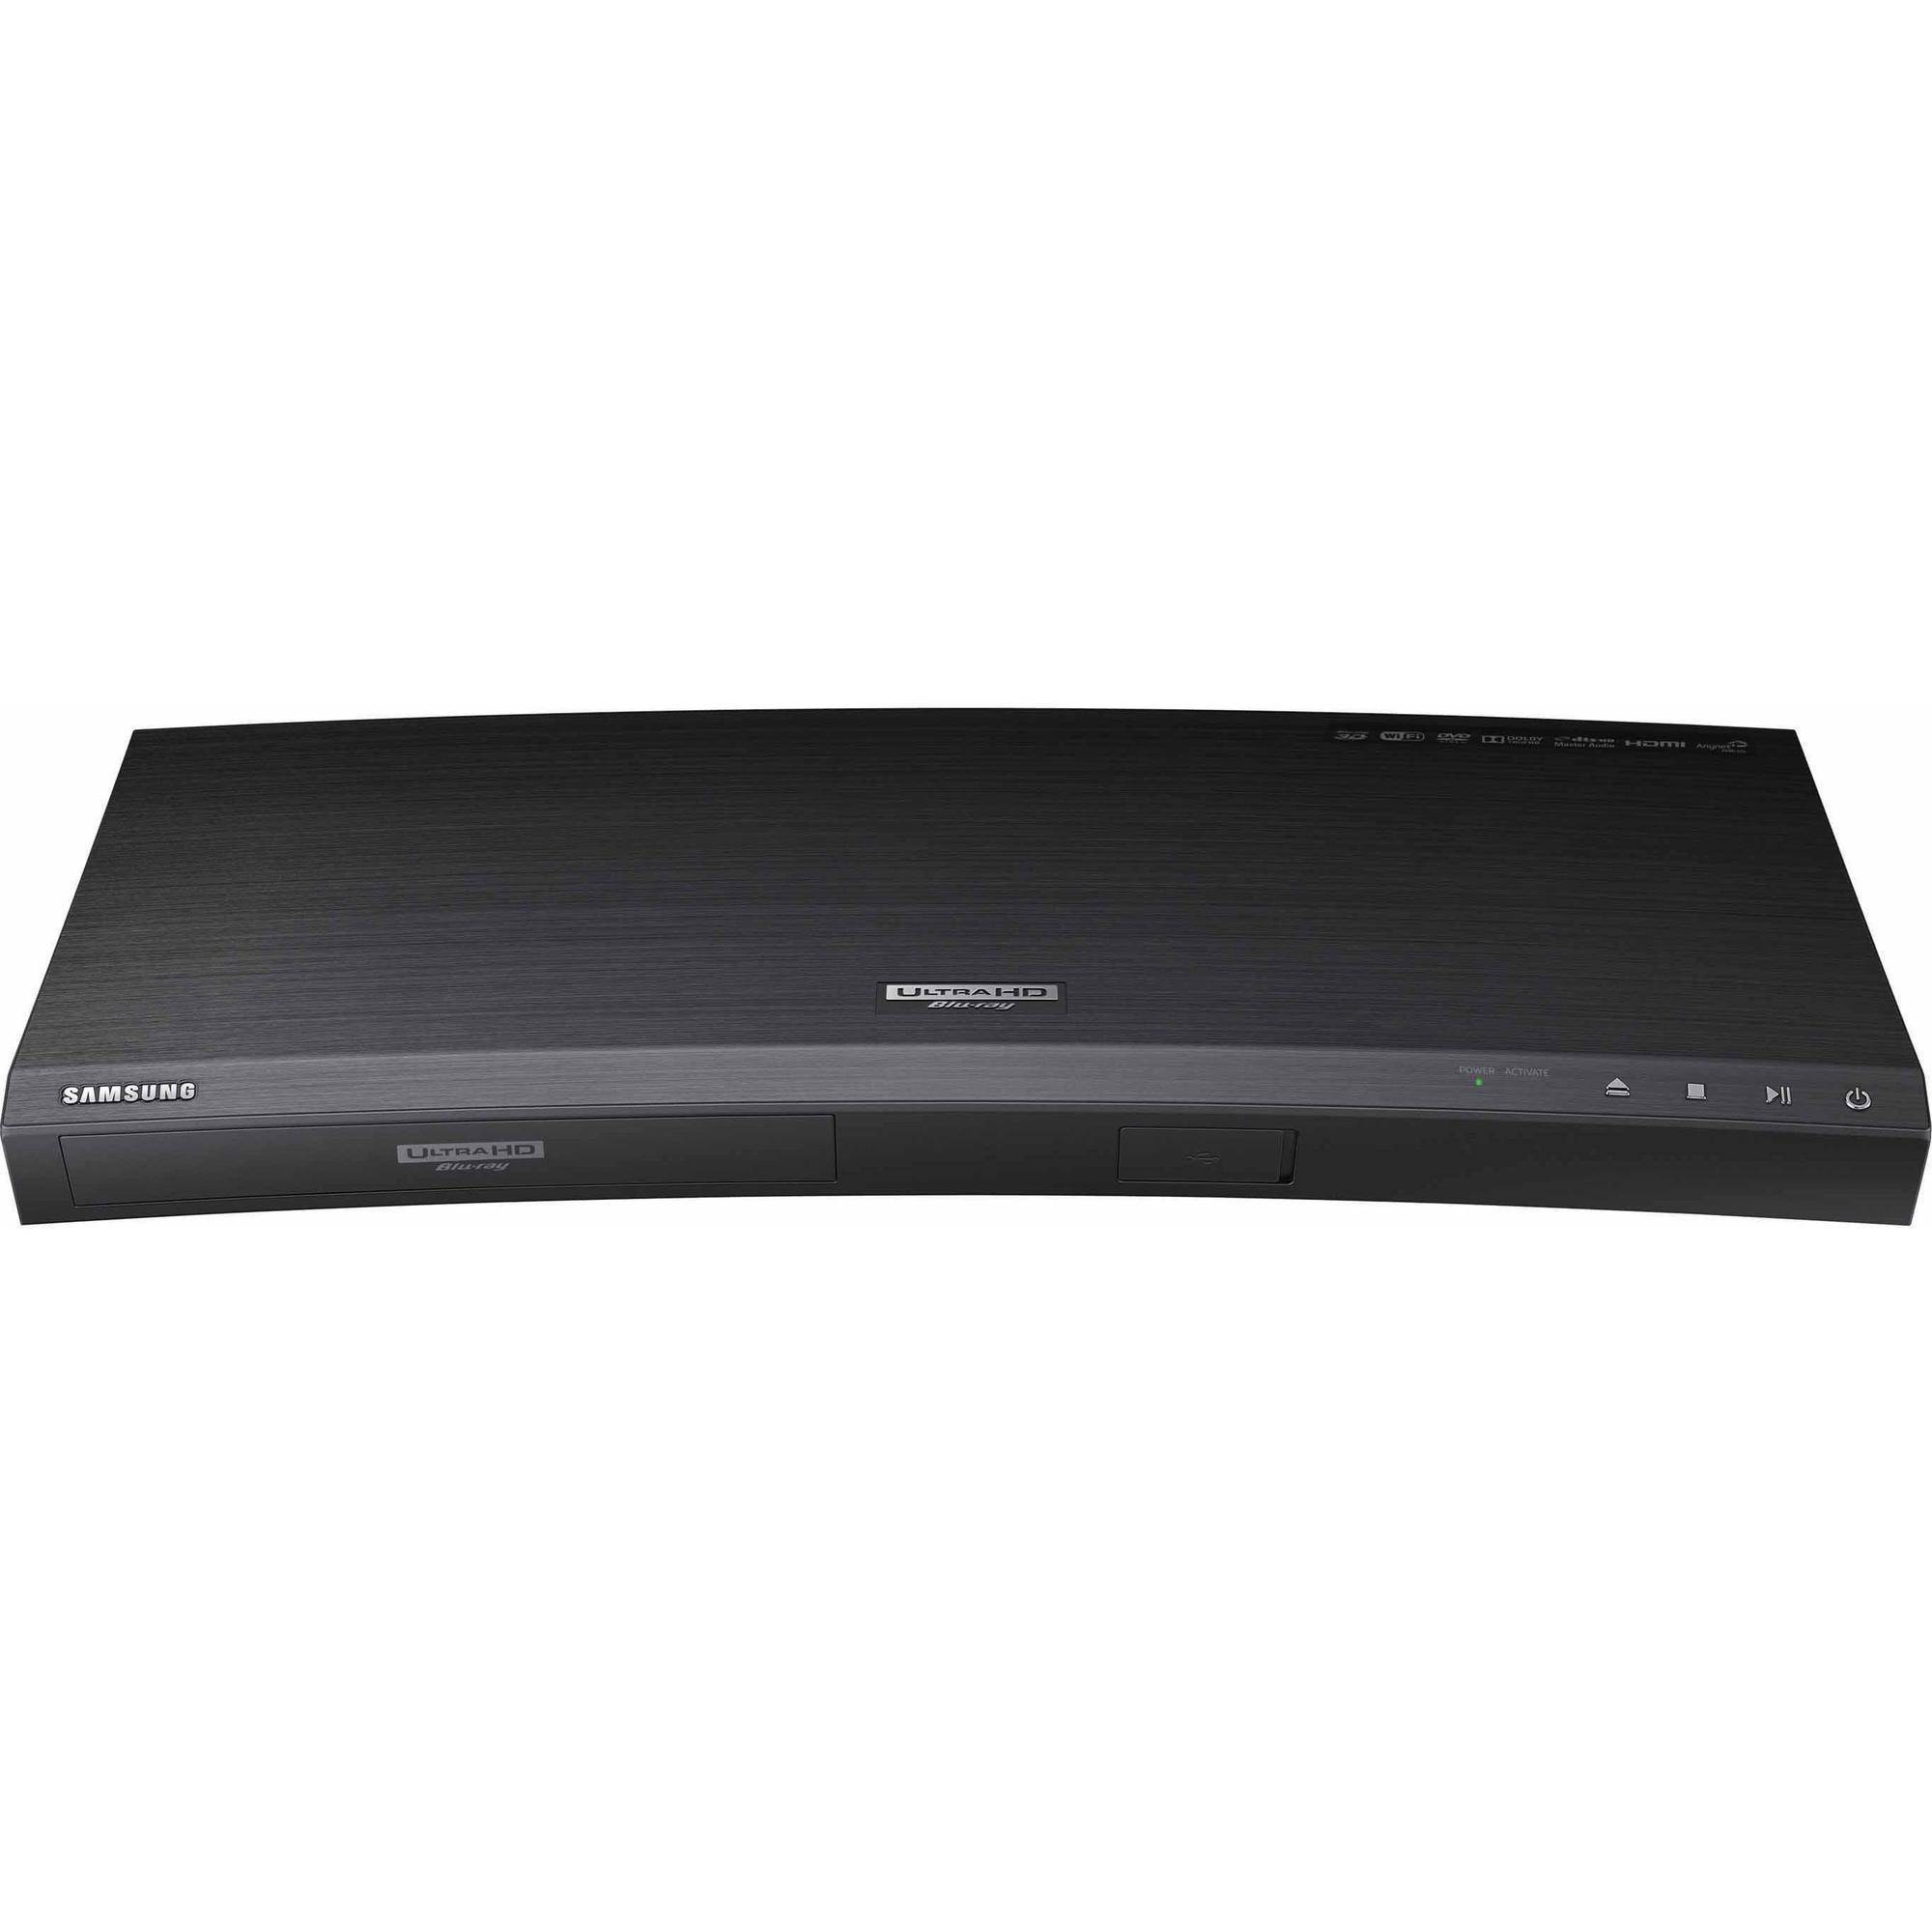 Samsung UBD-K8500 4K Ultra HD Blu-ray & DVD Player with HDR and Wi-Fi Streaming